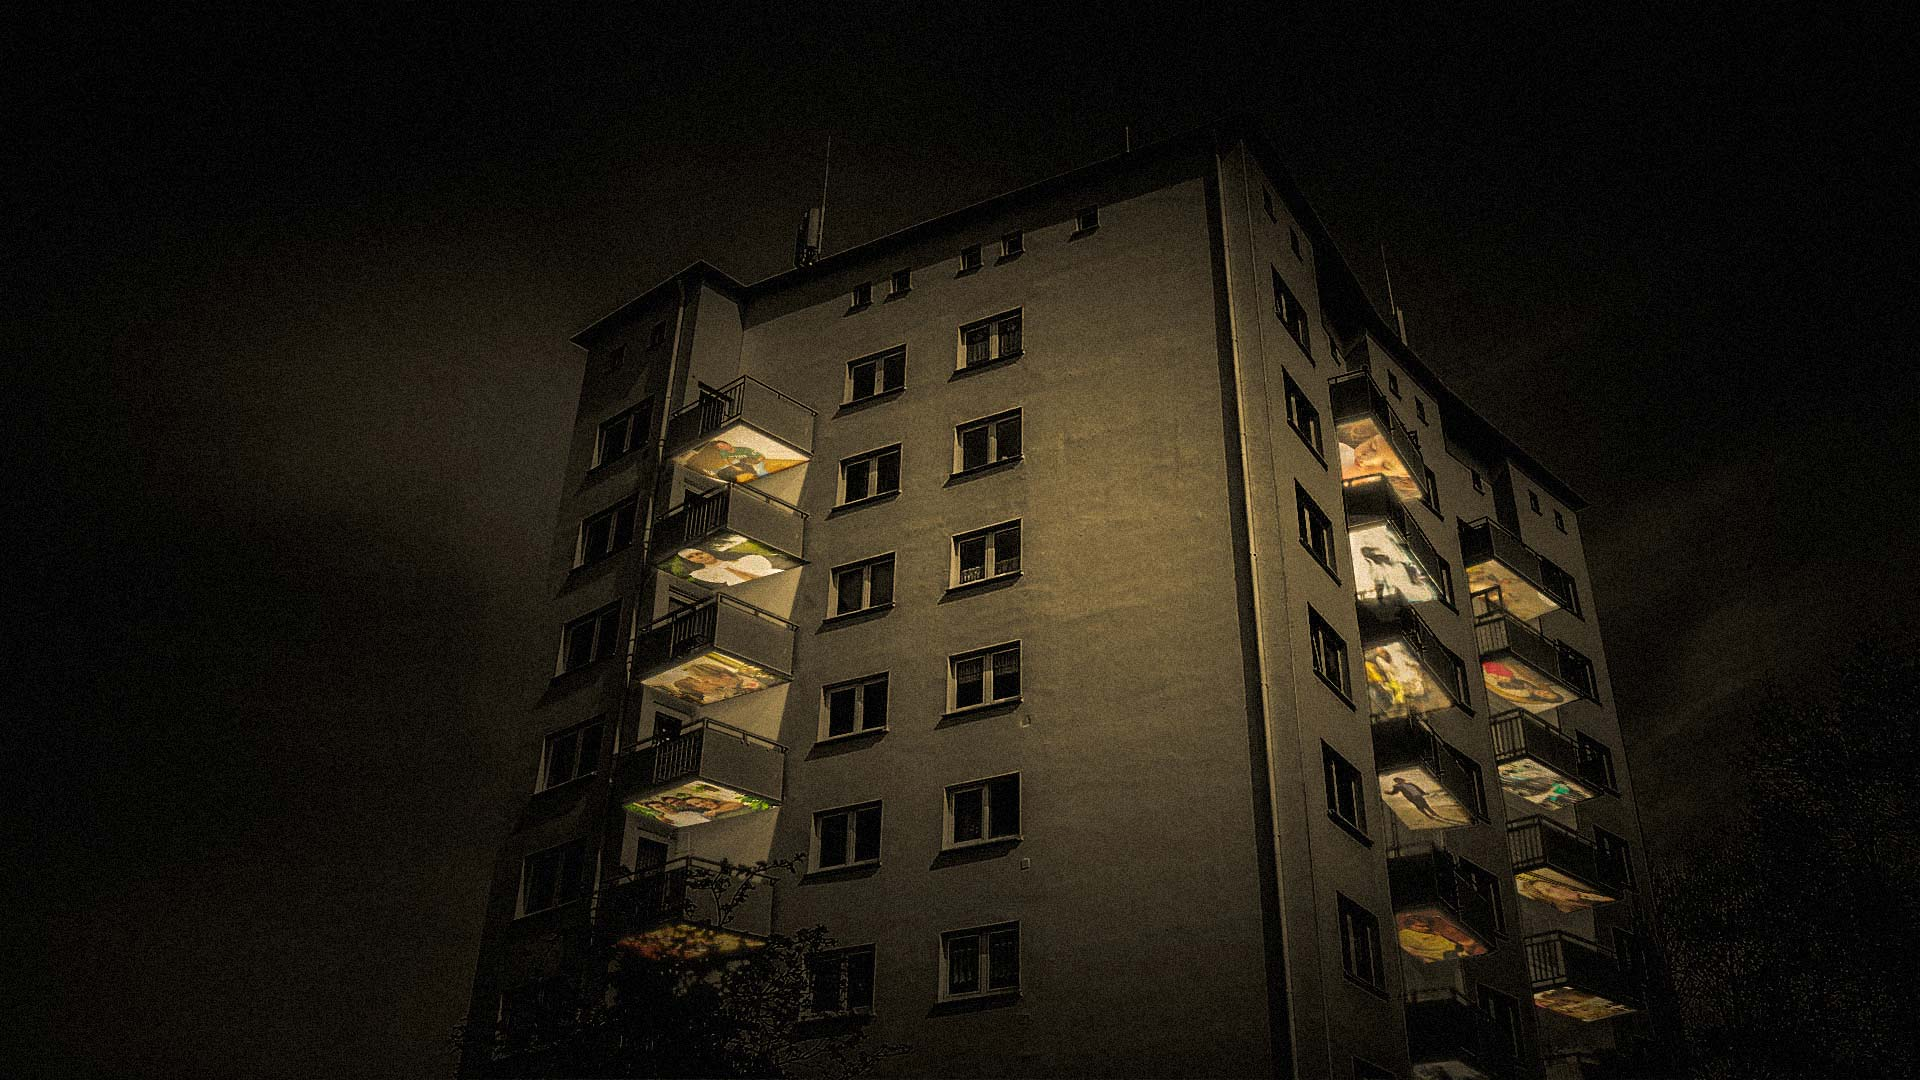 Balconies of a high-rise building turn into projection screens for a media installation